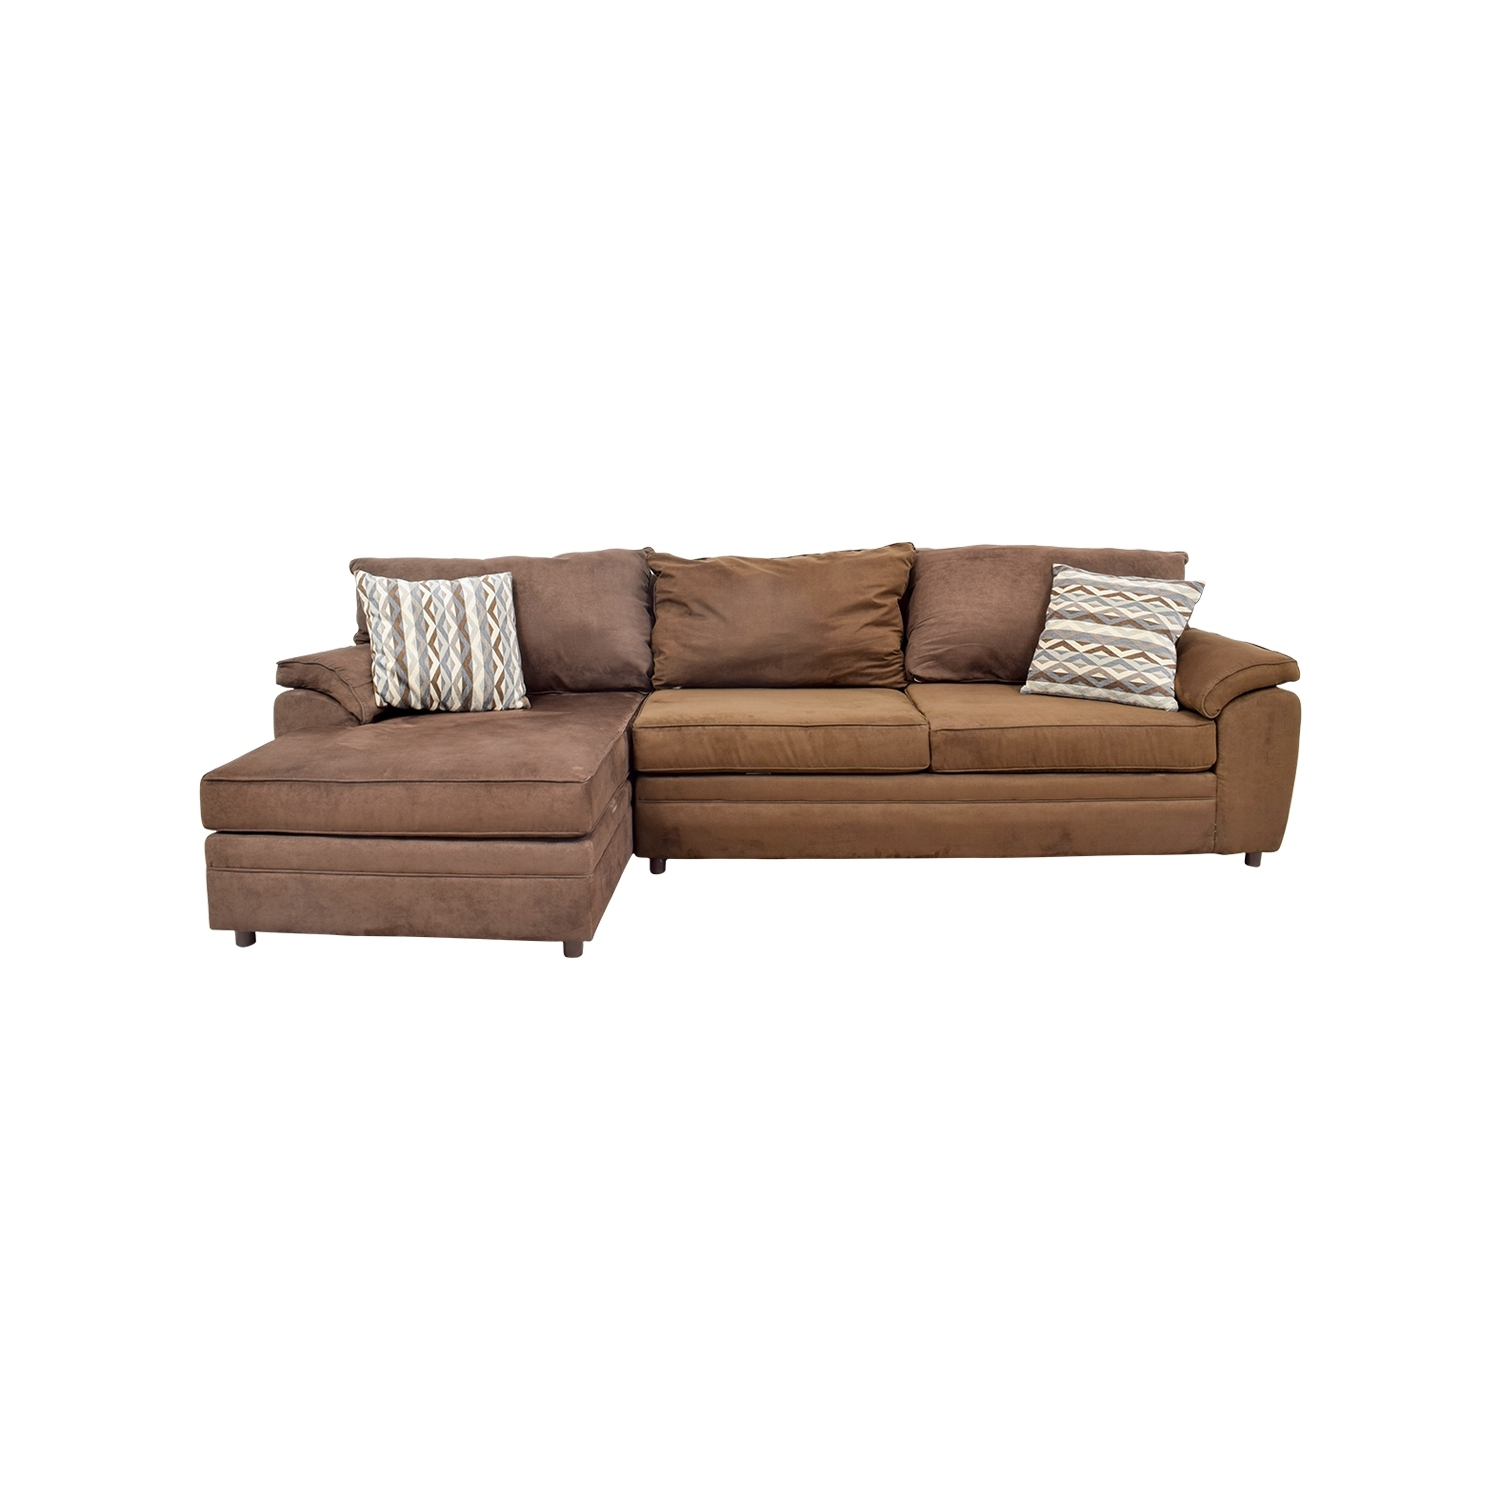 [%46% Off – Bob's Furniture Bob's Furniture Brown Chaise Sectional Intended For Famous Bobs Furniture Chaises|Bobs Furniture Chaises Intended For Recent 46% Off – Bob's Furniture Bob's Furniture Brown Chaise Sectional|Most Up To Date Bobs Furniture Chaises Inside 46% Off – Bob's Furniture Bob's Furniture Brown Chaise Sectional|Newest 46% Off – Bob's Furniture Bob's Furniture Brown Chaise Sectional With Regard To Bobs Furniture Chaises%] (View 4 of 15)